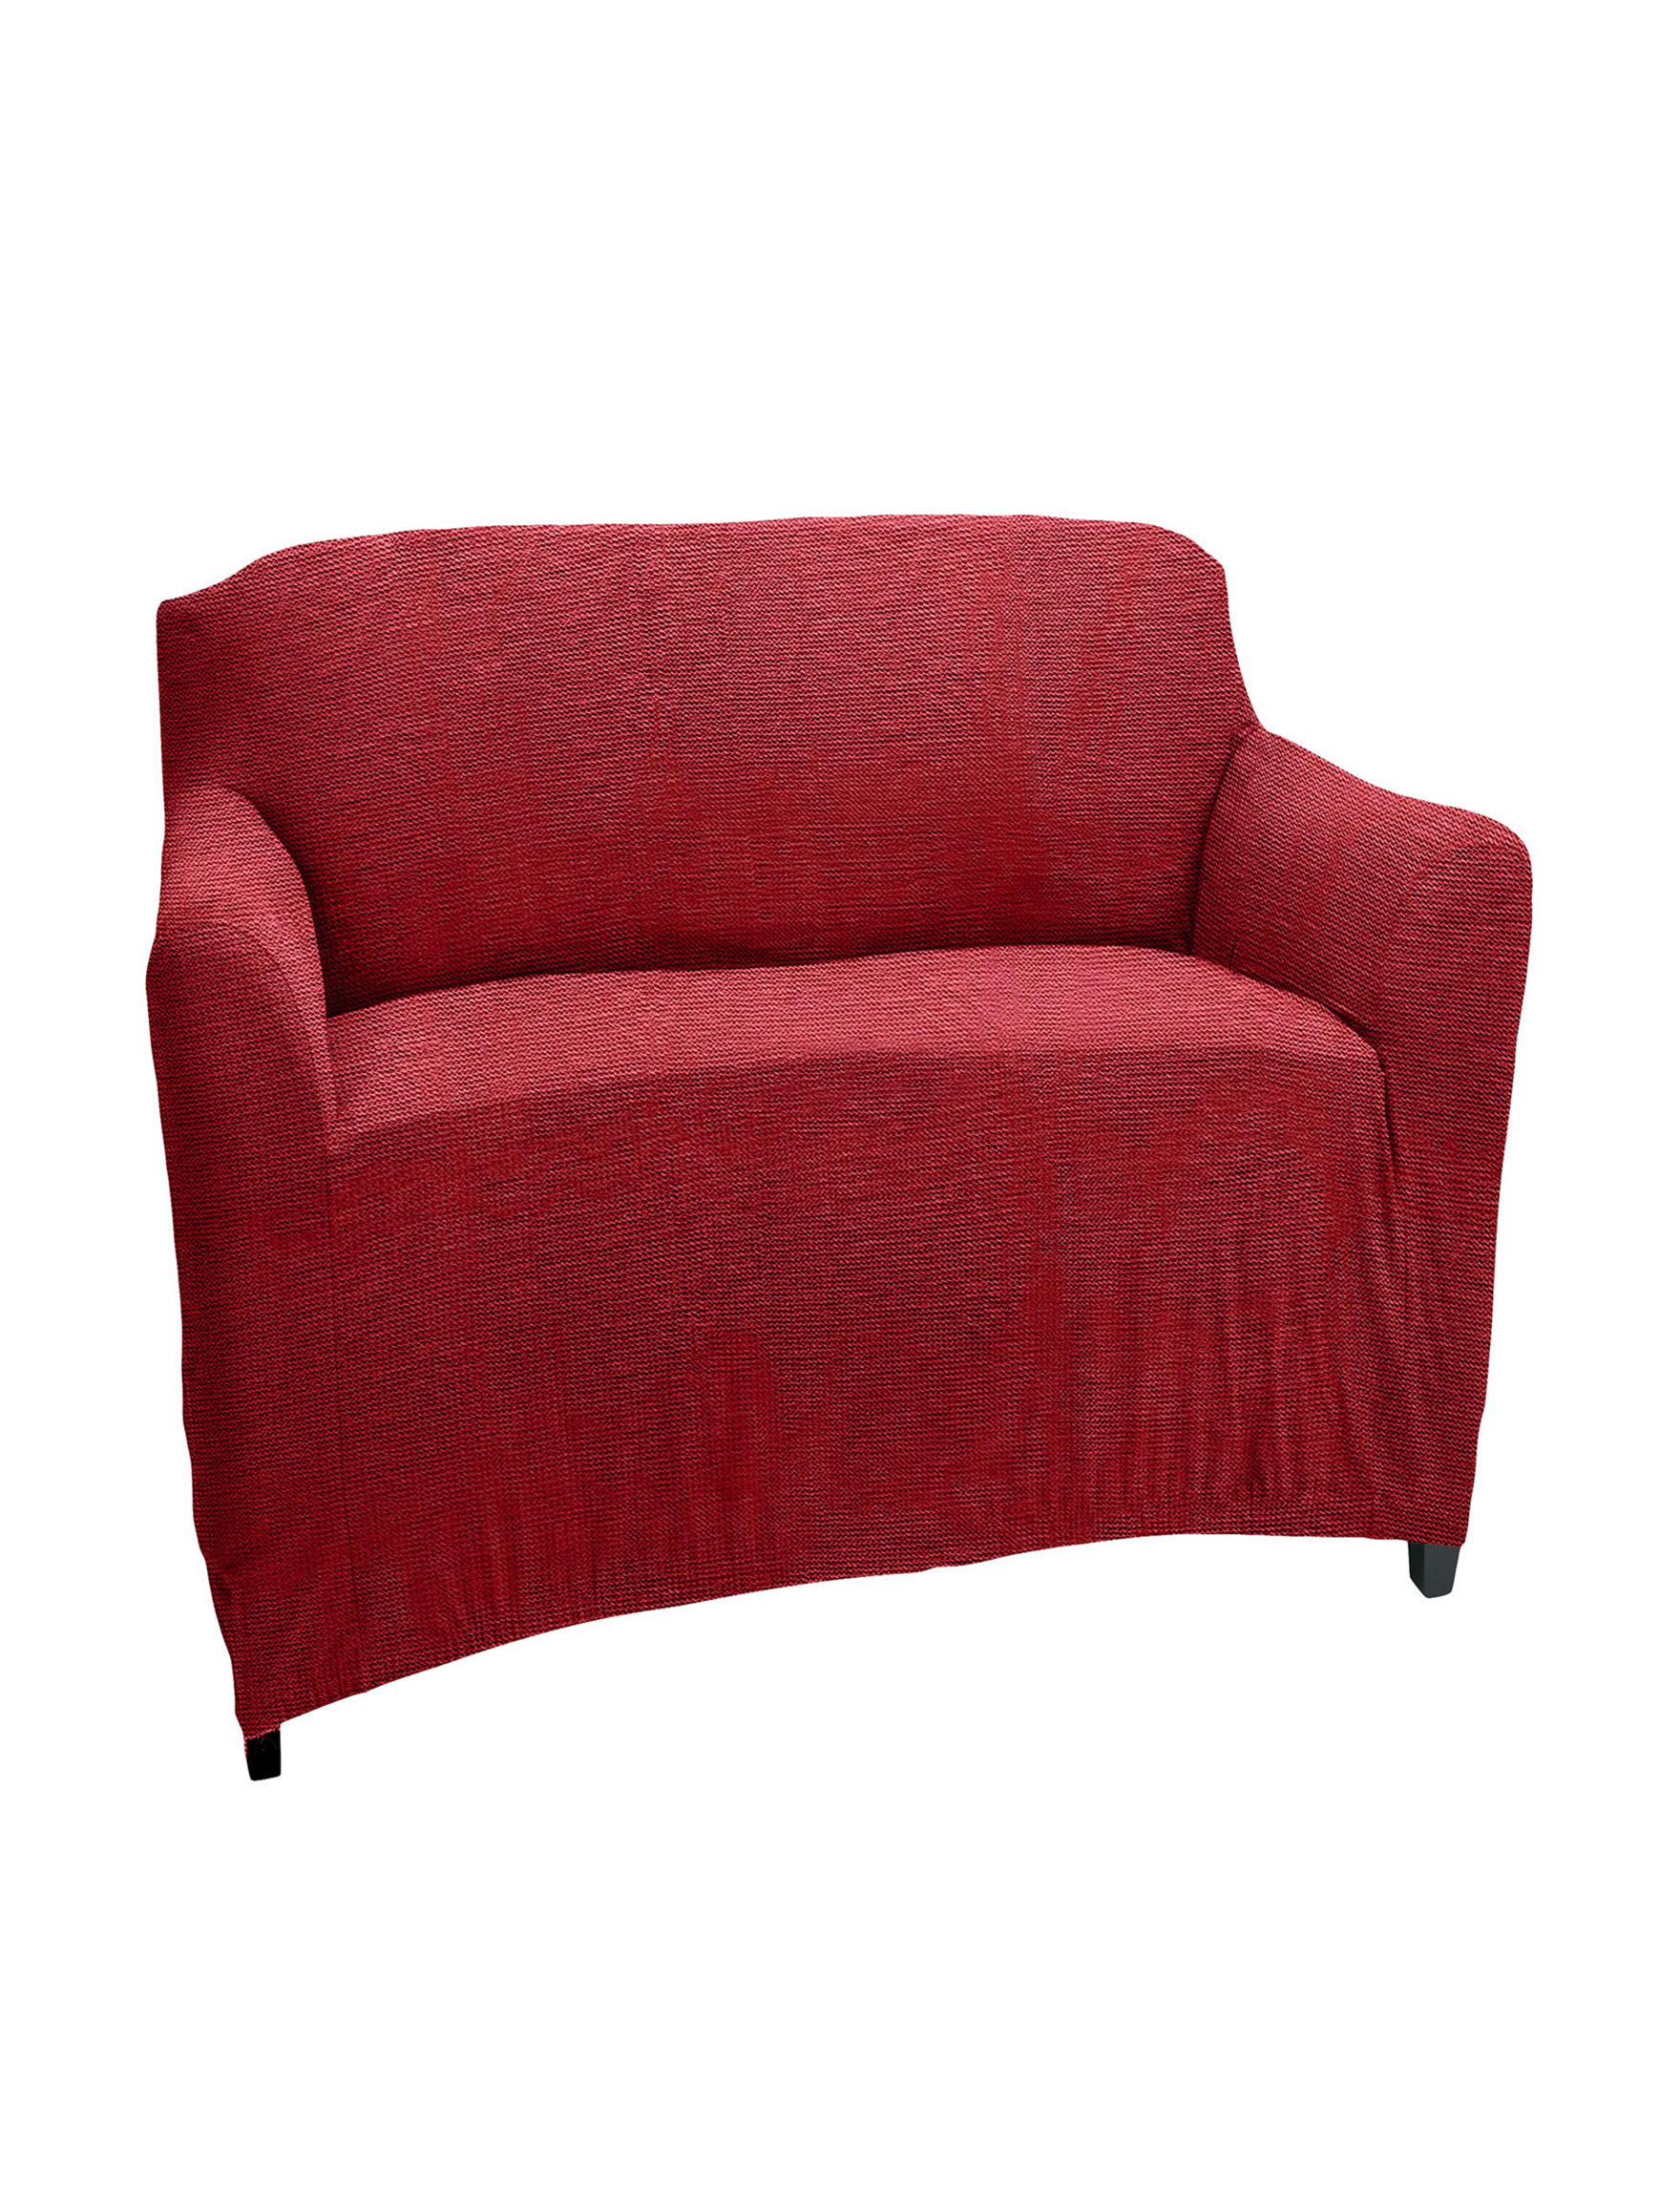 Home Details Burgundy Slipcovers